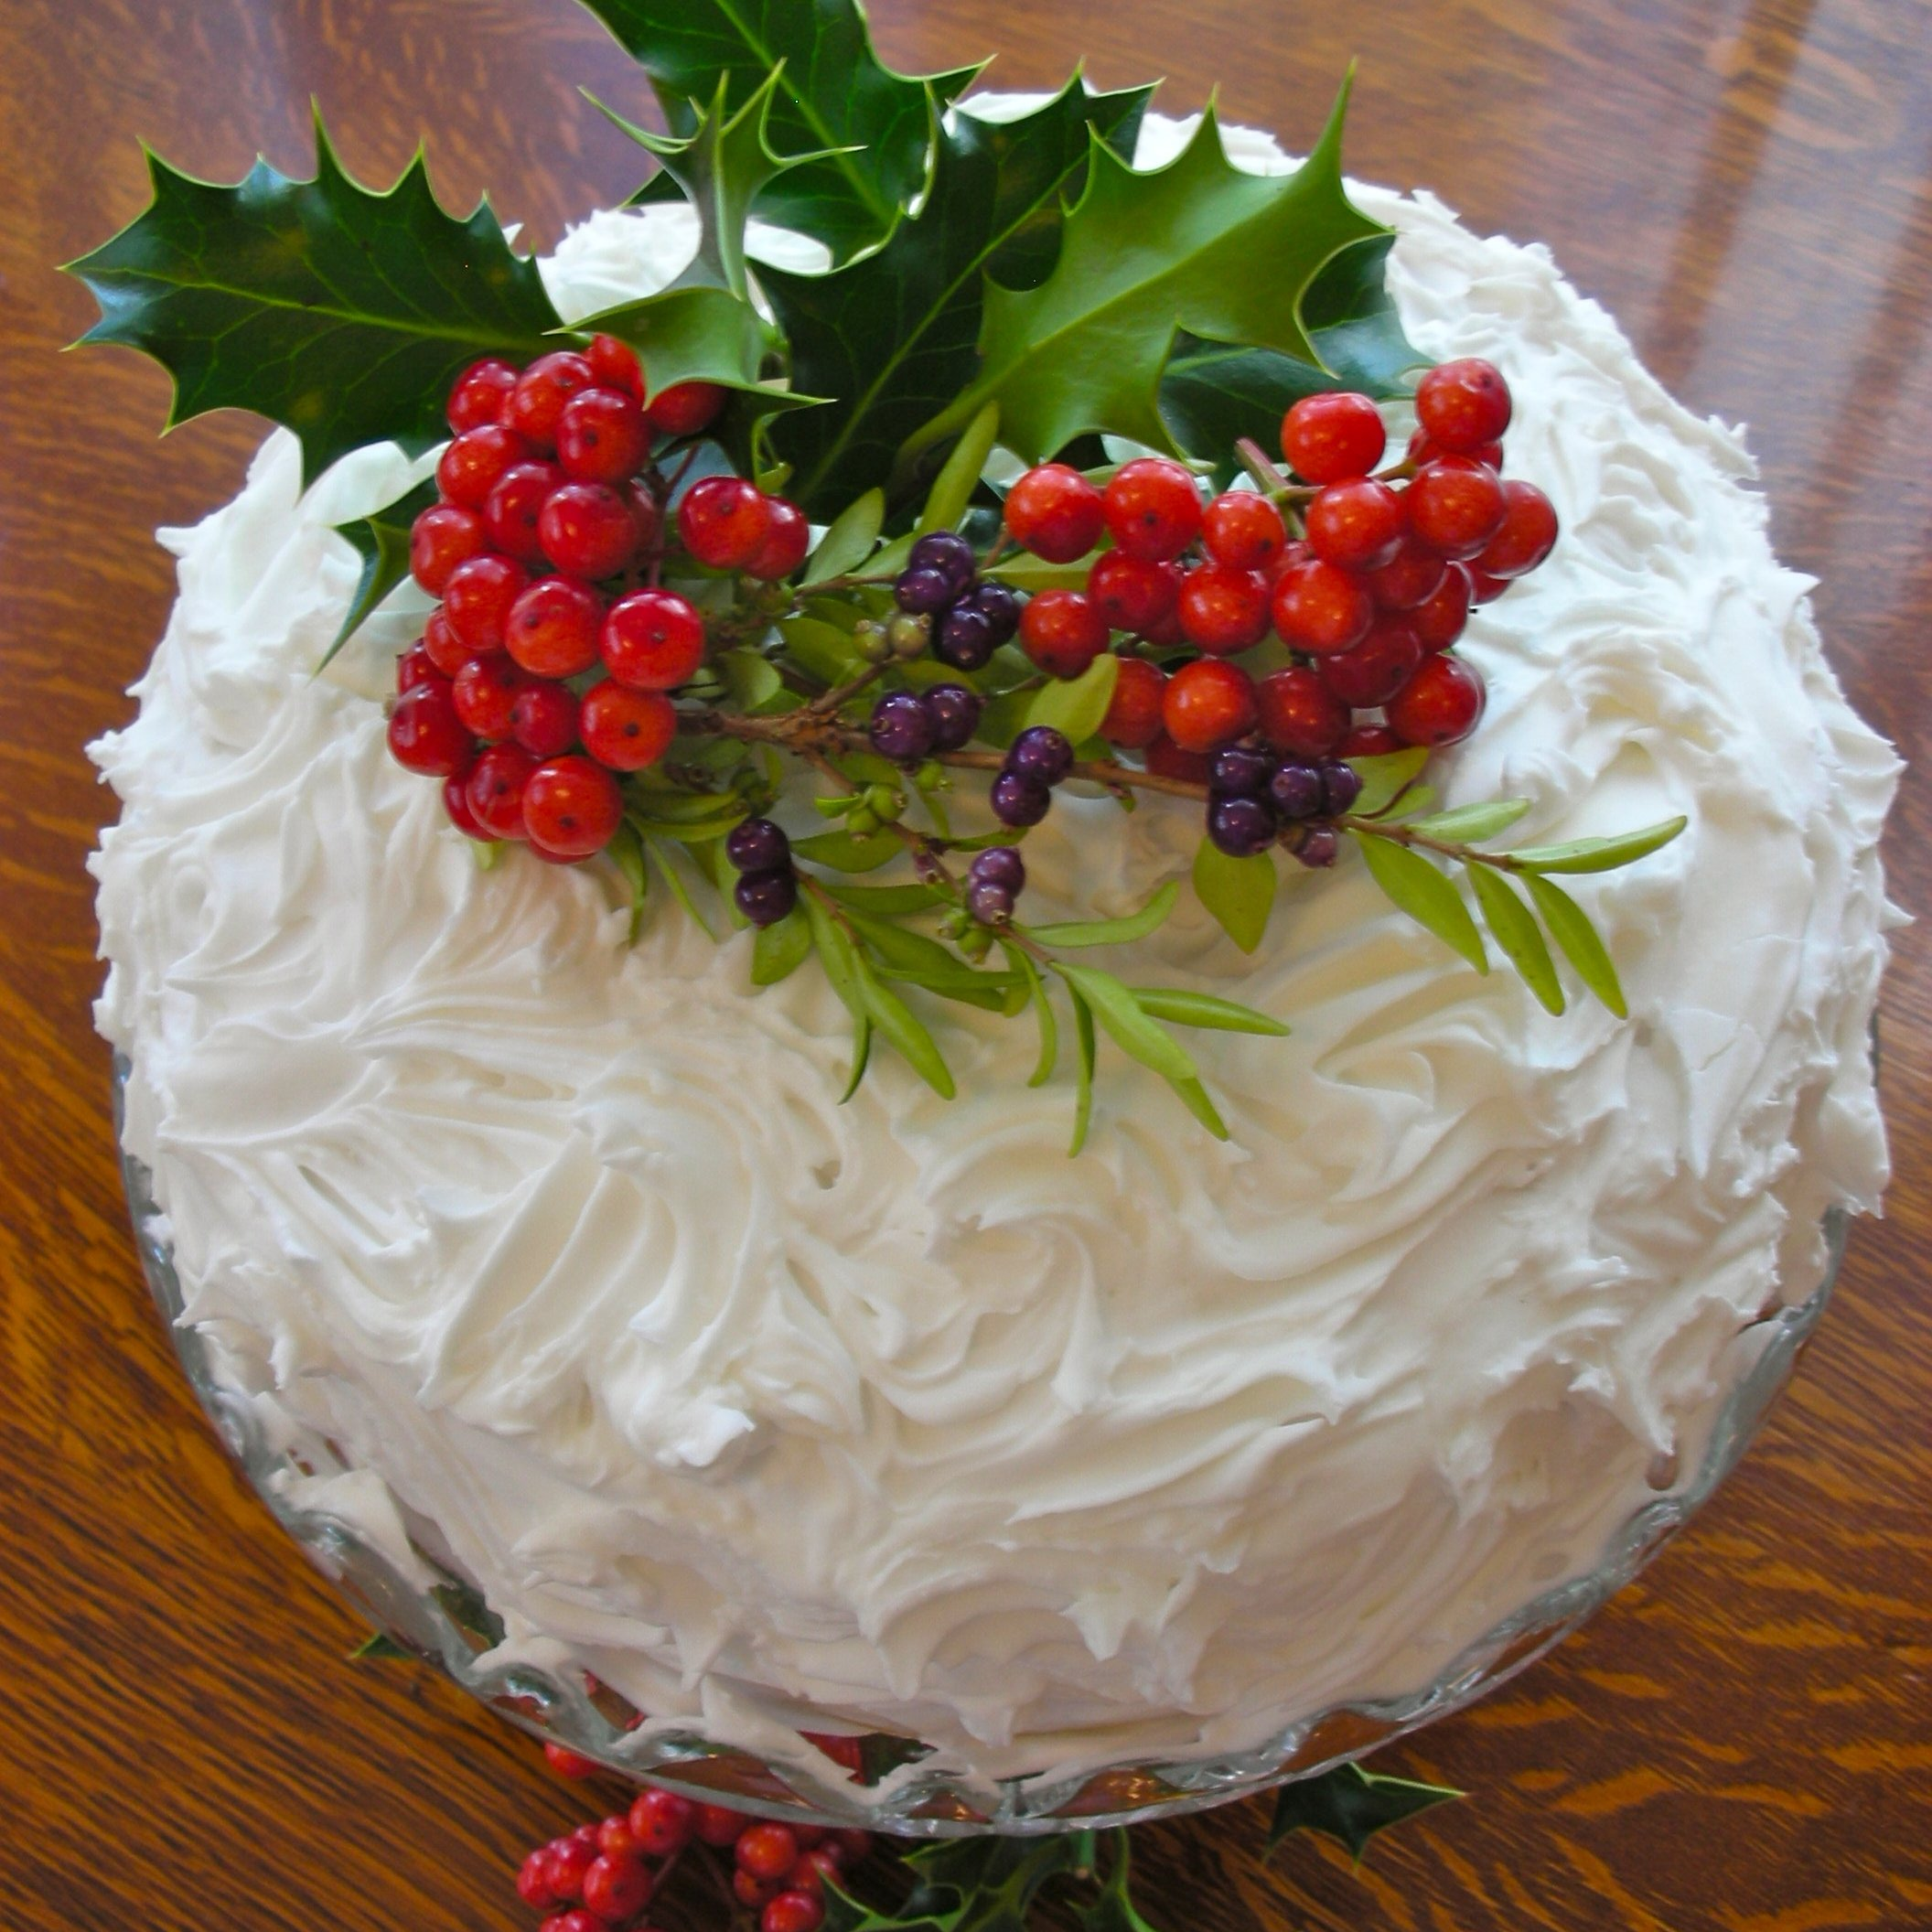 decorate christmas cakes with festive flowers - Christmas Dessert Decorations